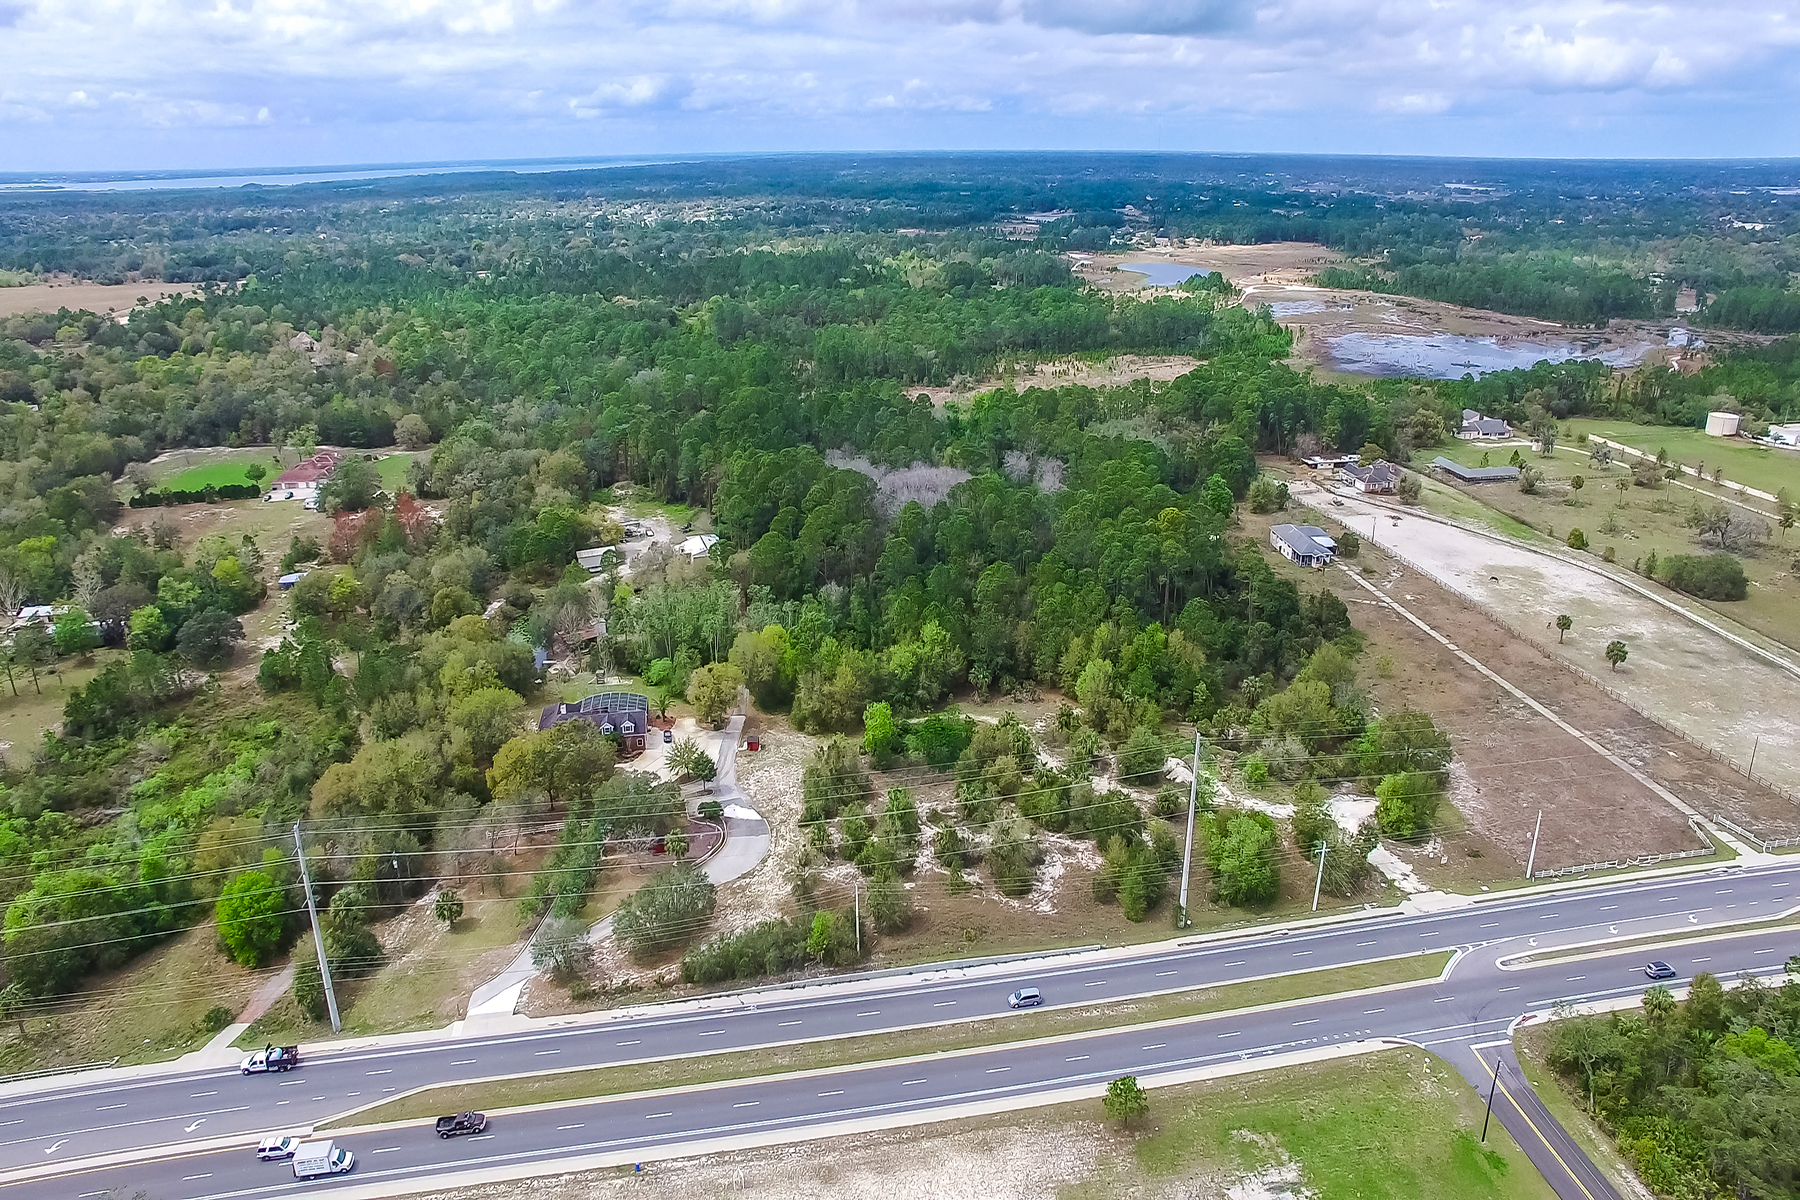 Land for Sale at OSTEEN N State Rd 415 00, Osteen, Florida 32764 United States